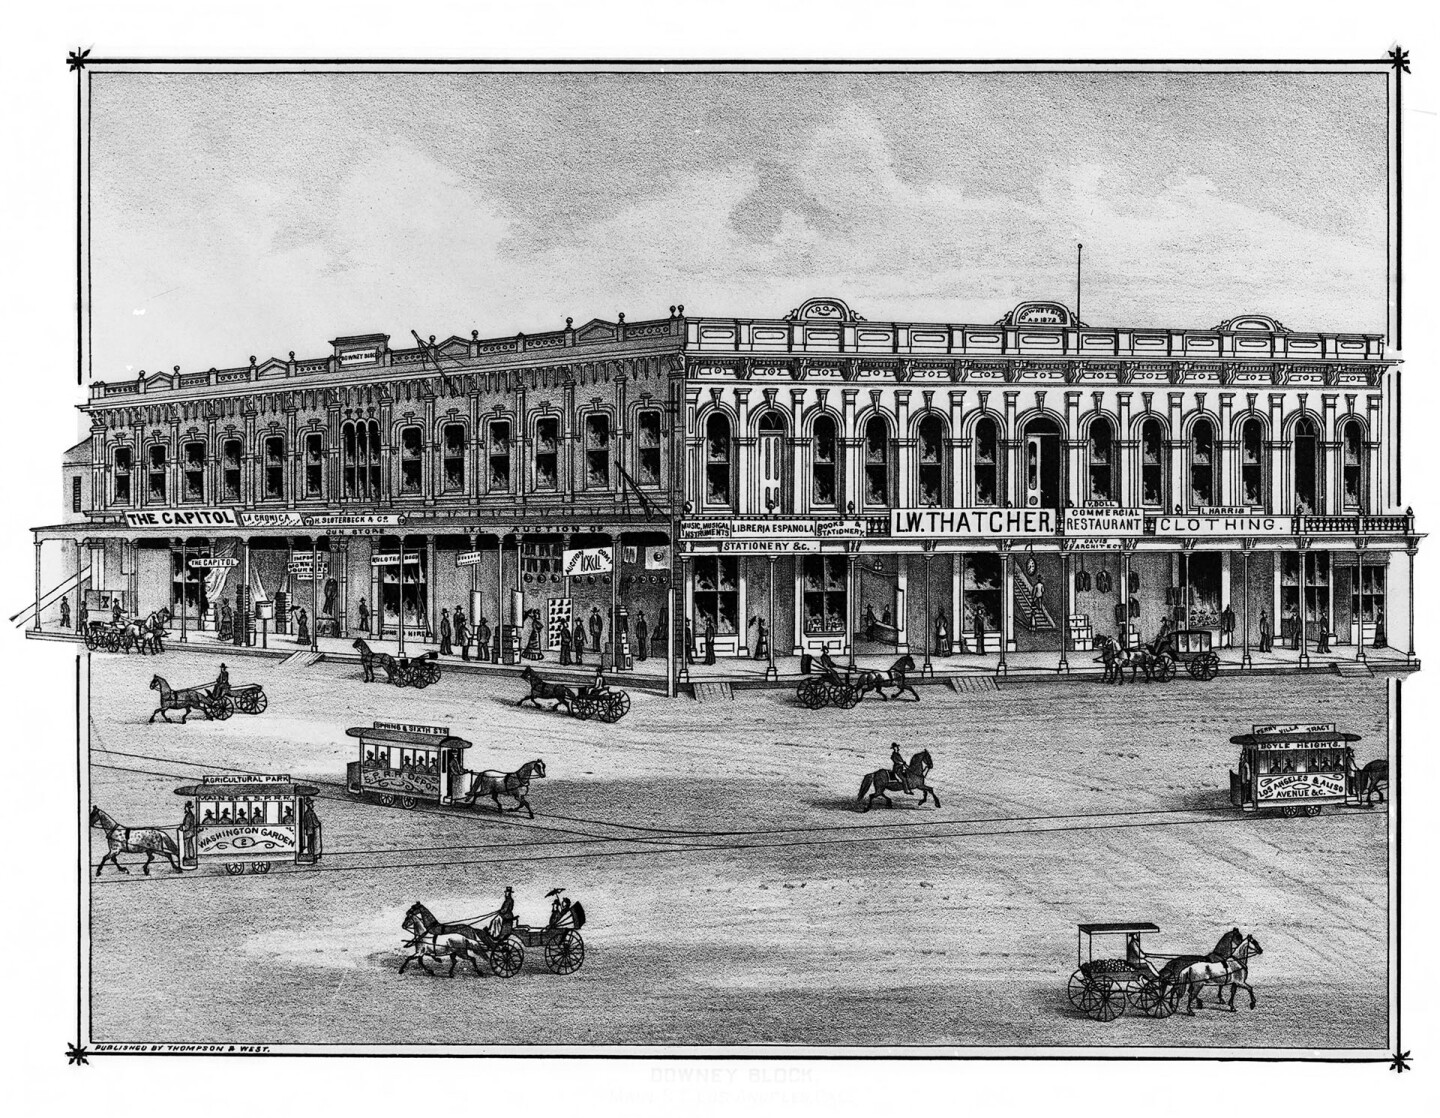 Horses and horse-drawn vehicles race past the Downey Block in this 1880 lithograph from Thompson and West's history of Los Angeles County. Courtesy of the USC Libraries - California Historical Society Collection.